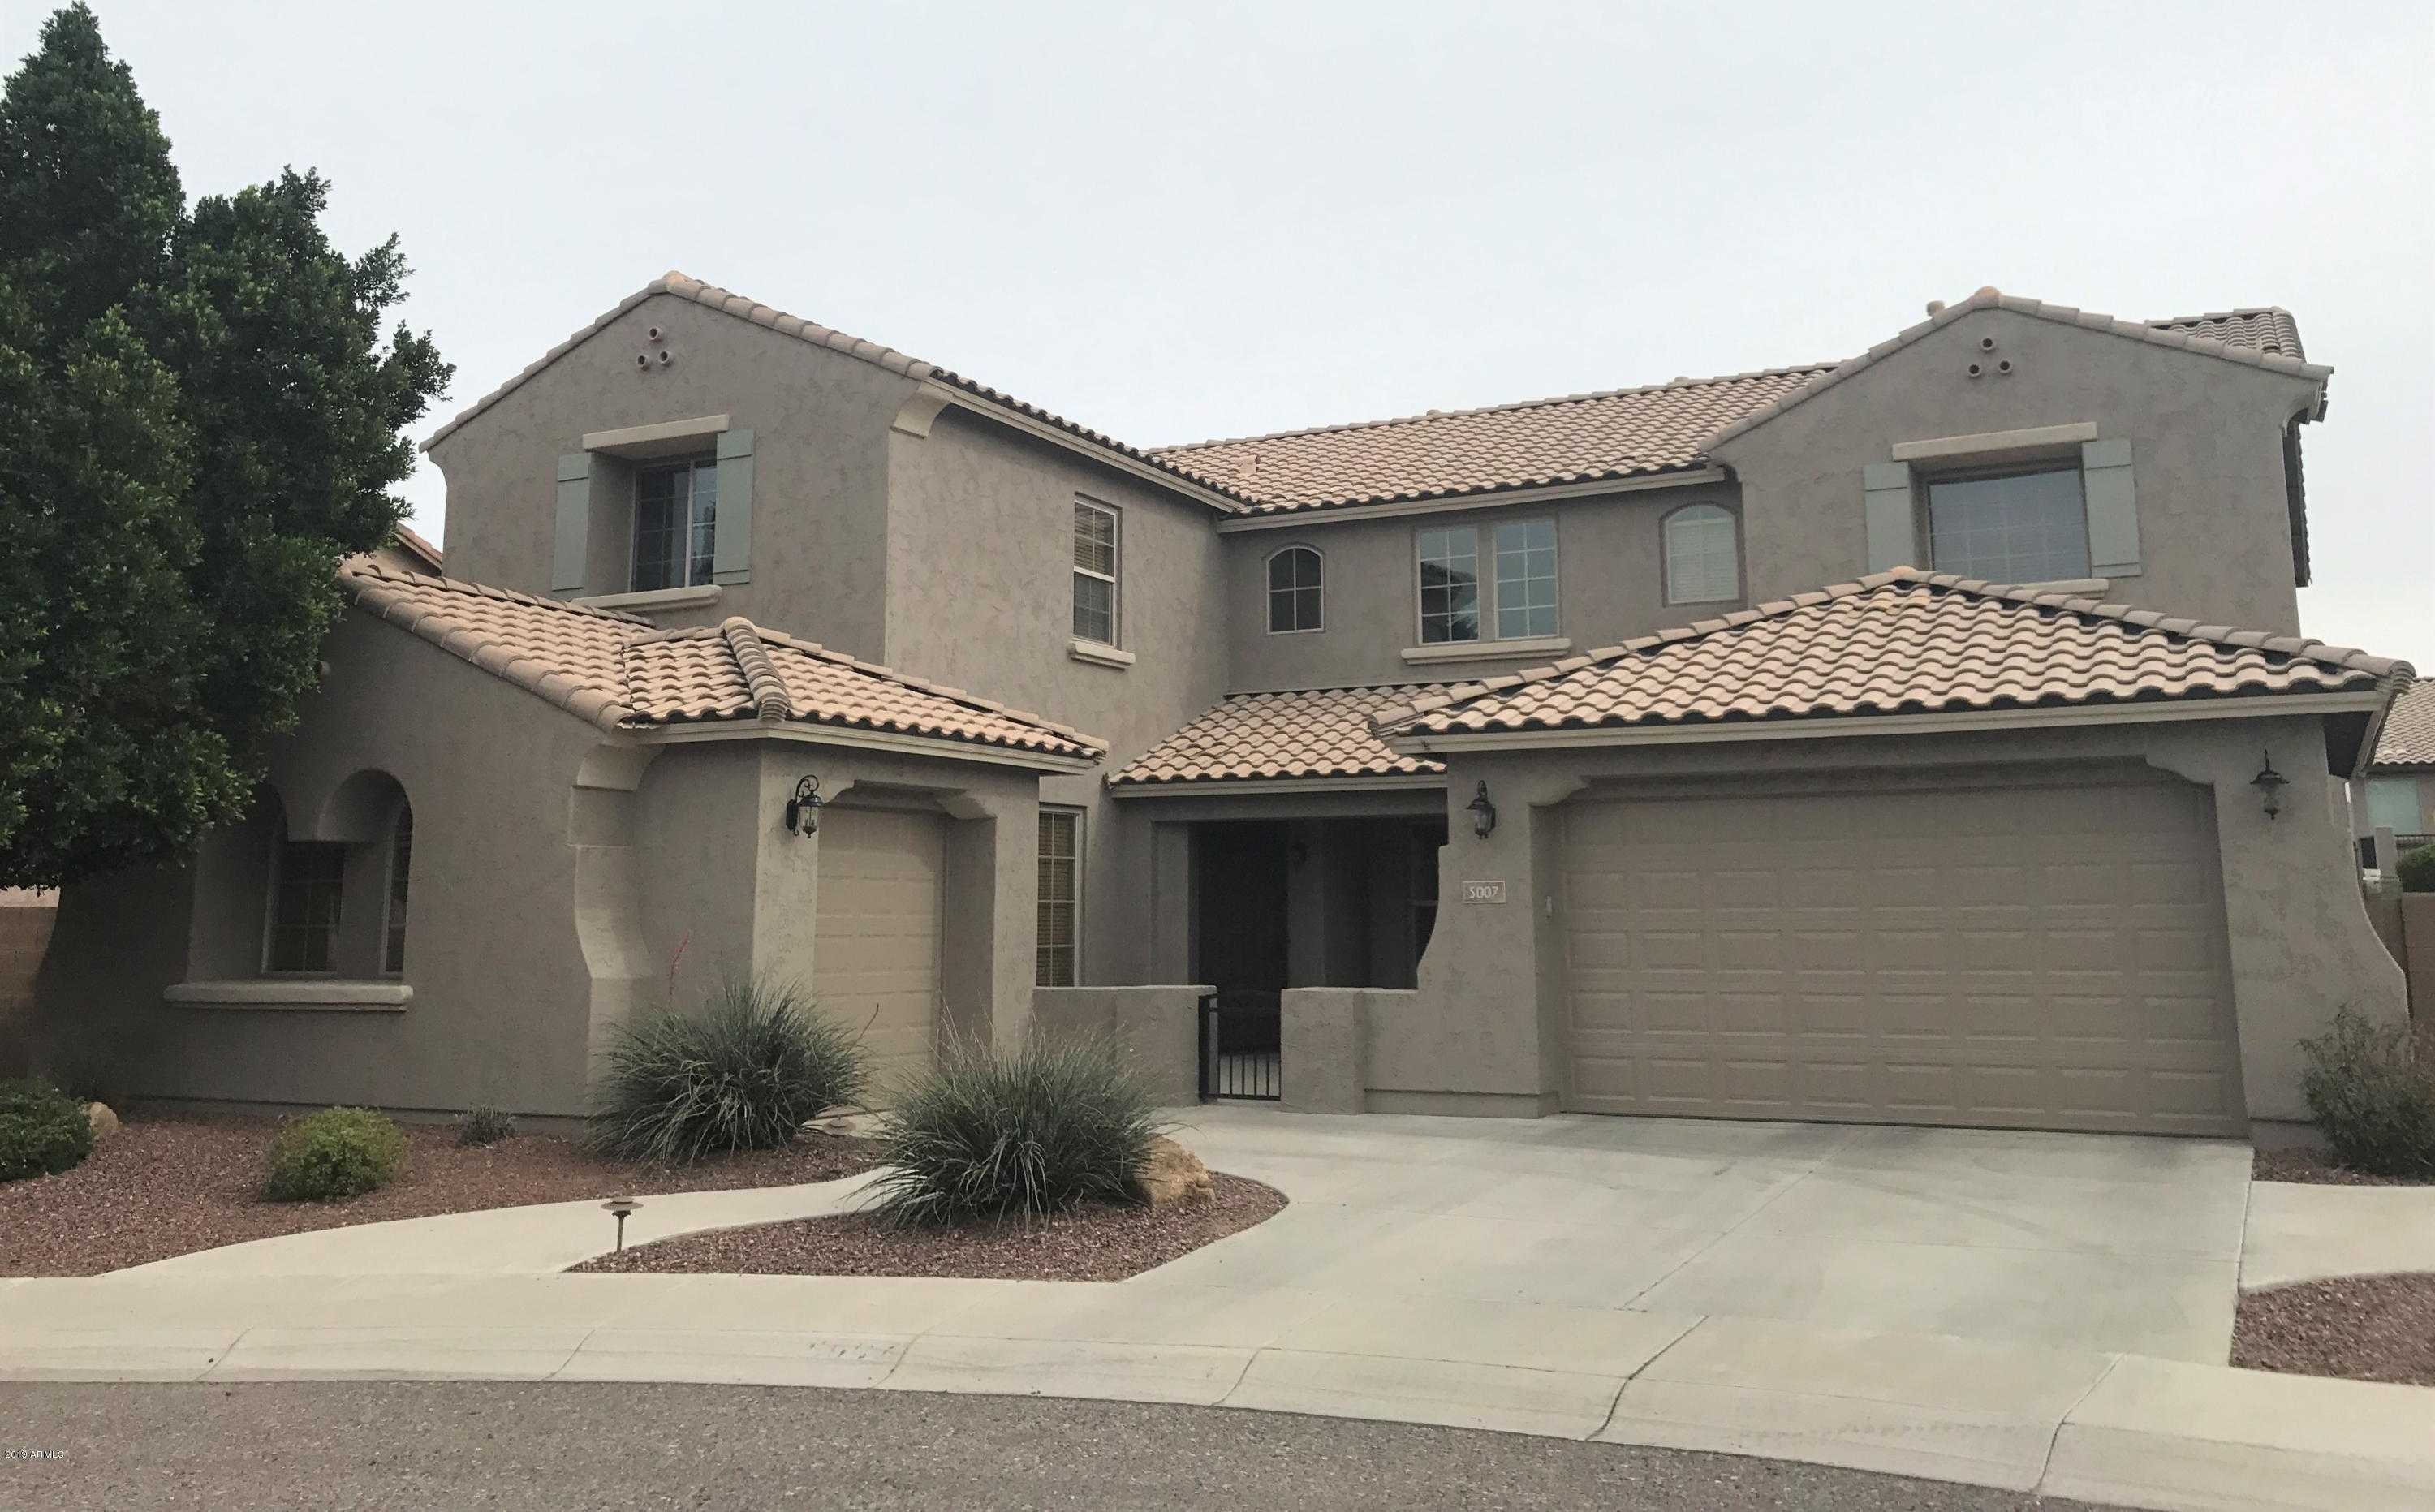 $530,000 - 5Br/5Ba - Home for Sale in Stetson Valley Parcels 7 8 9 10, Phoenix